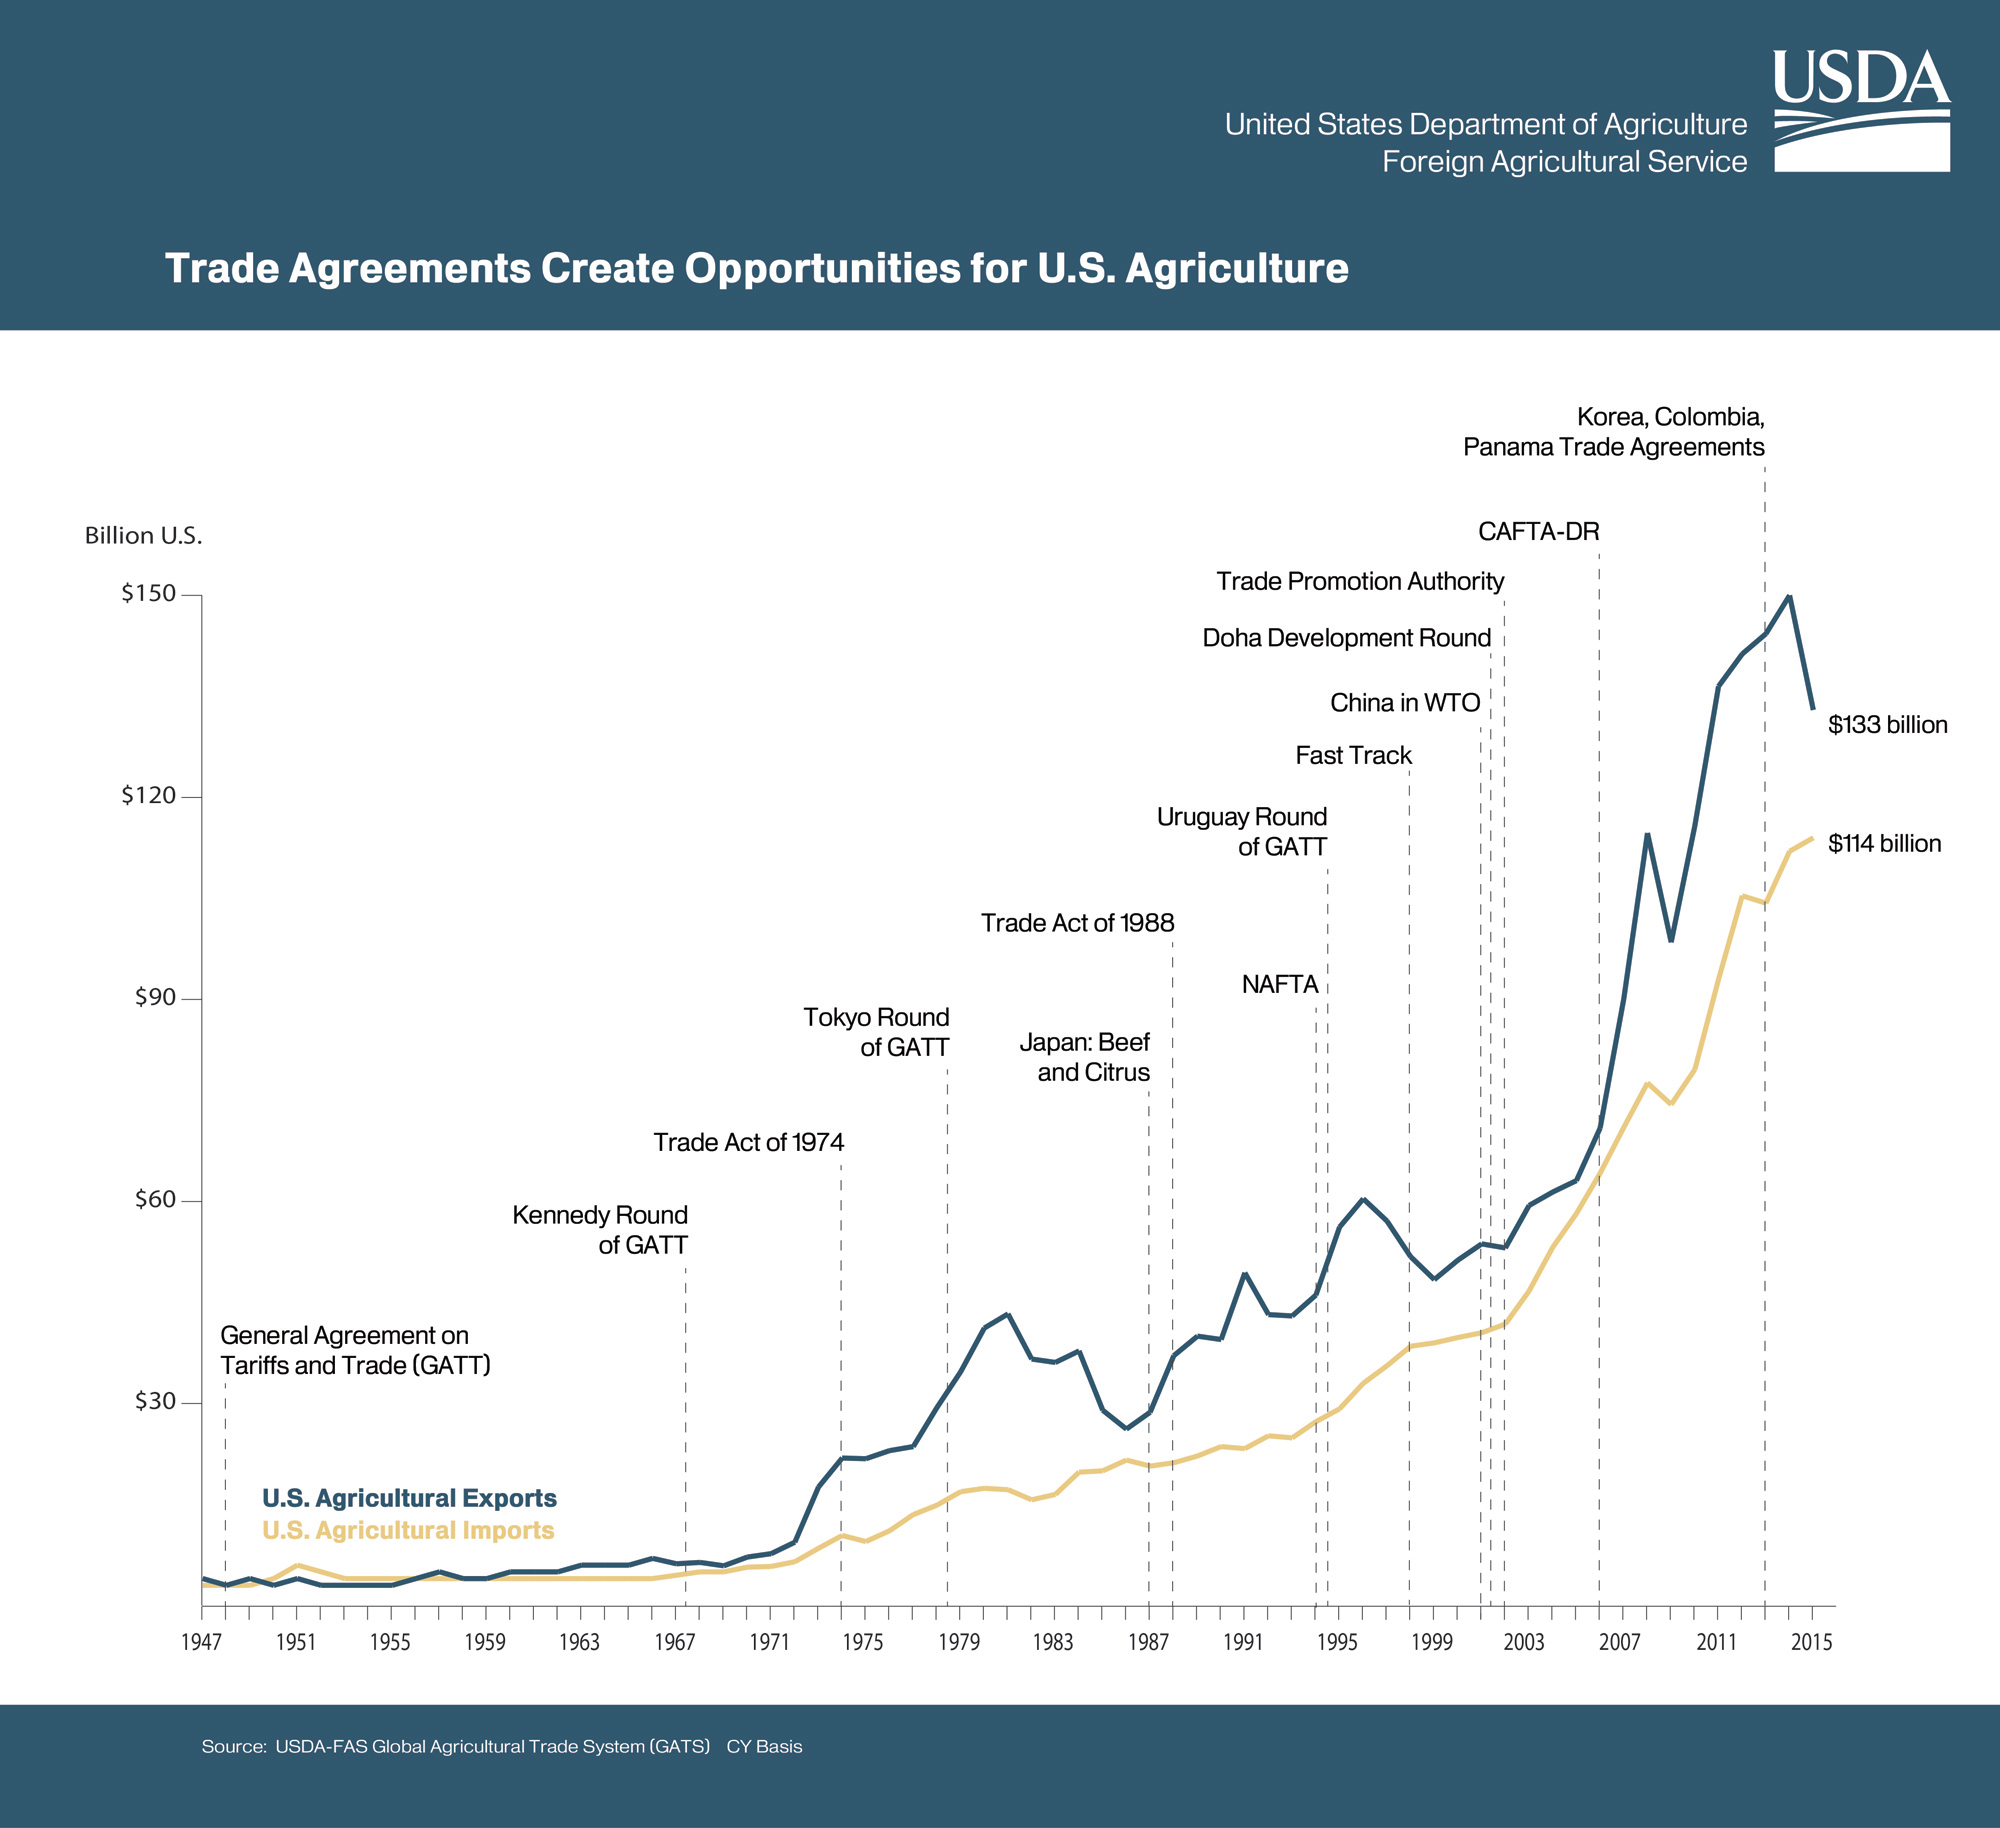 Trade Agreements Create Opportunities Graph